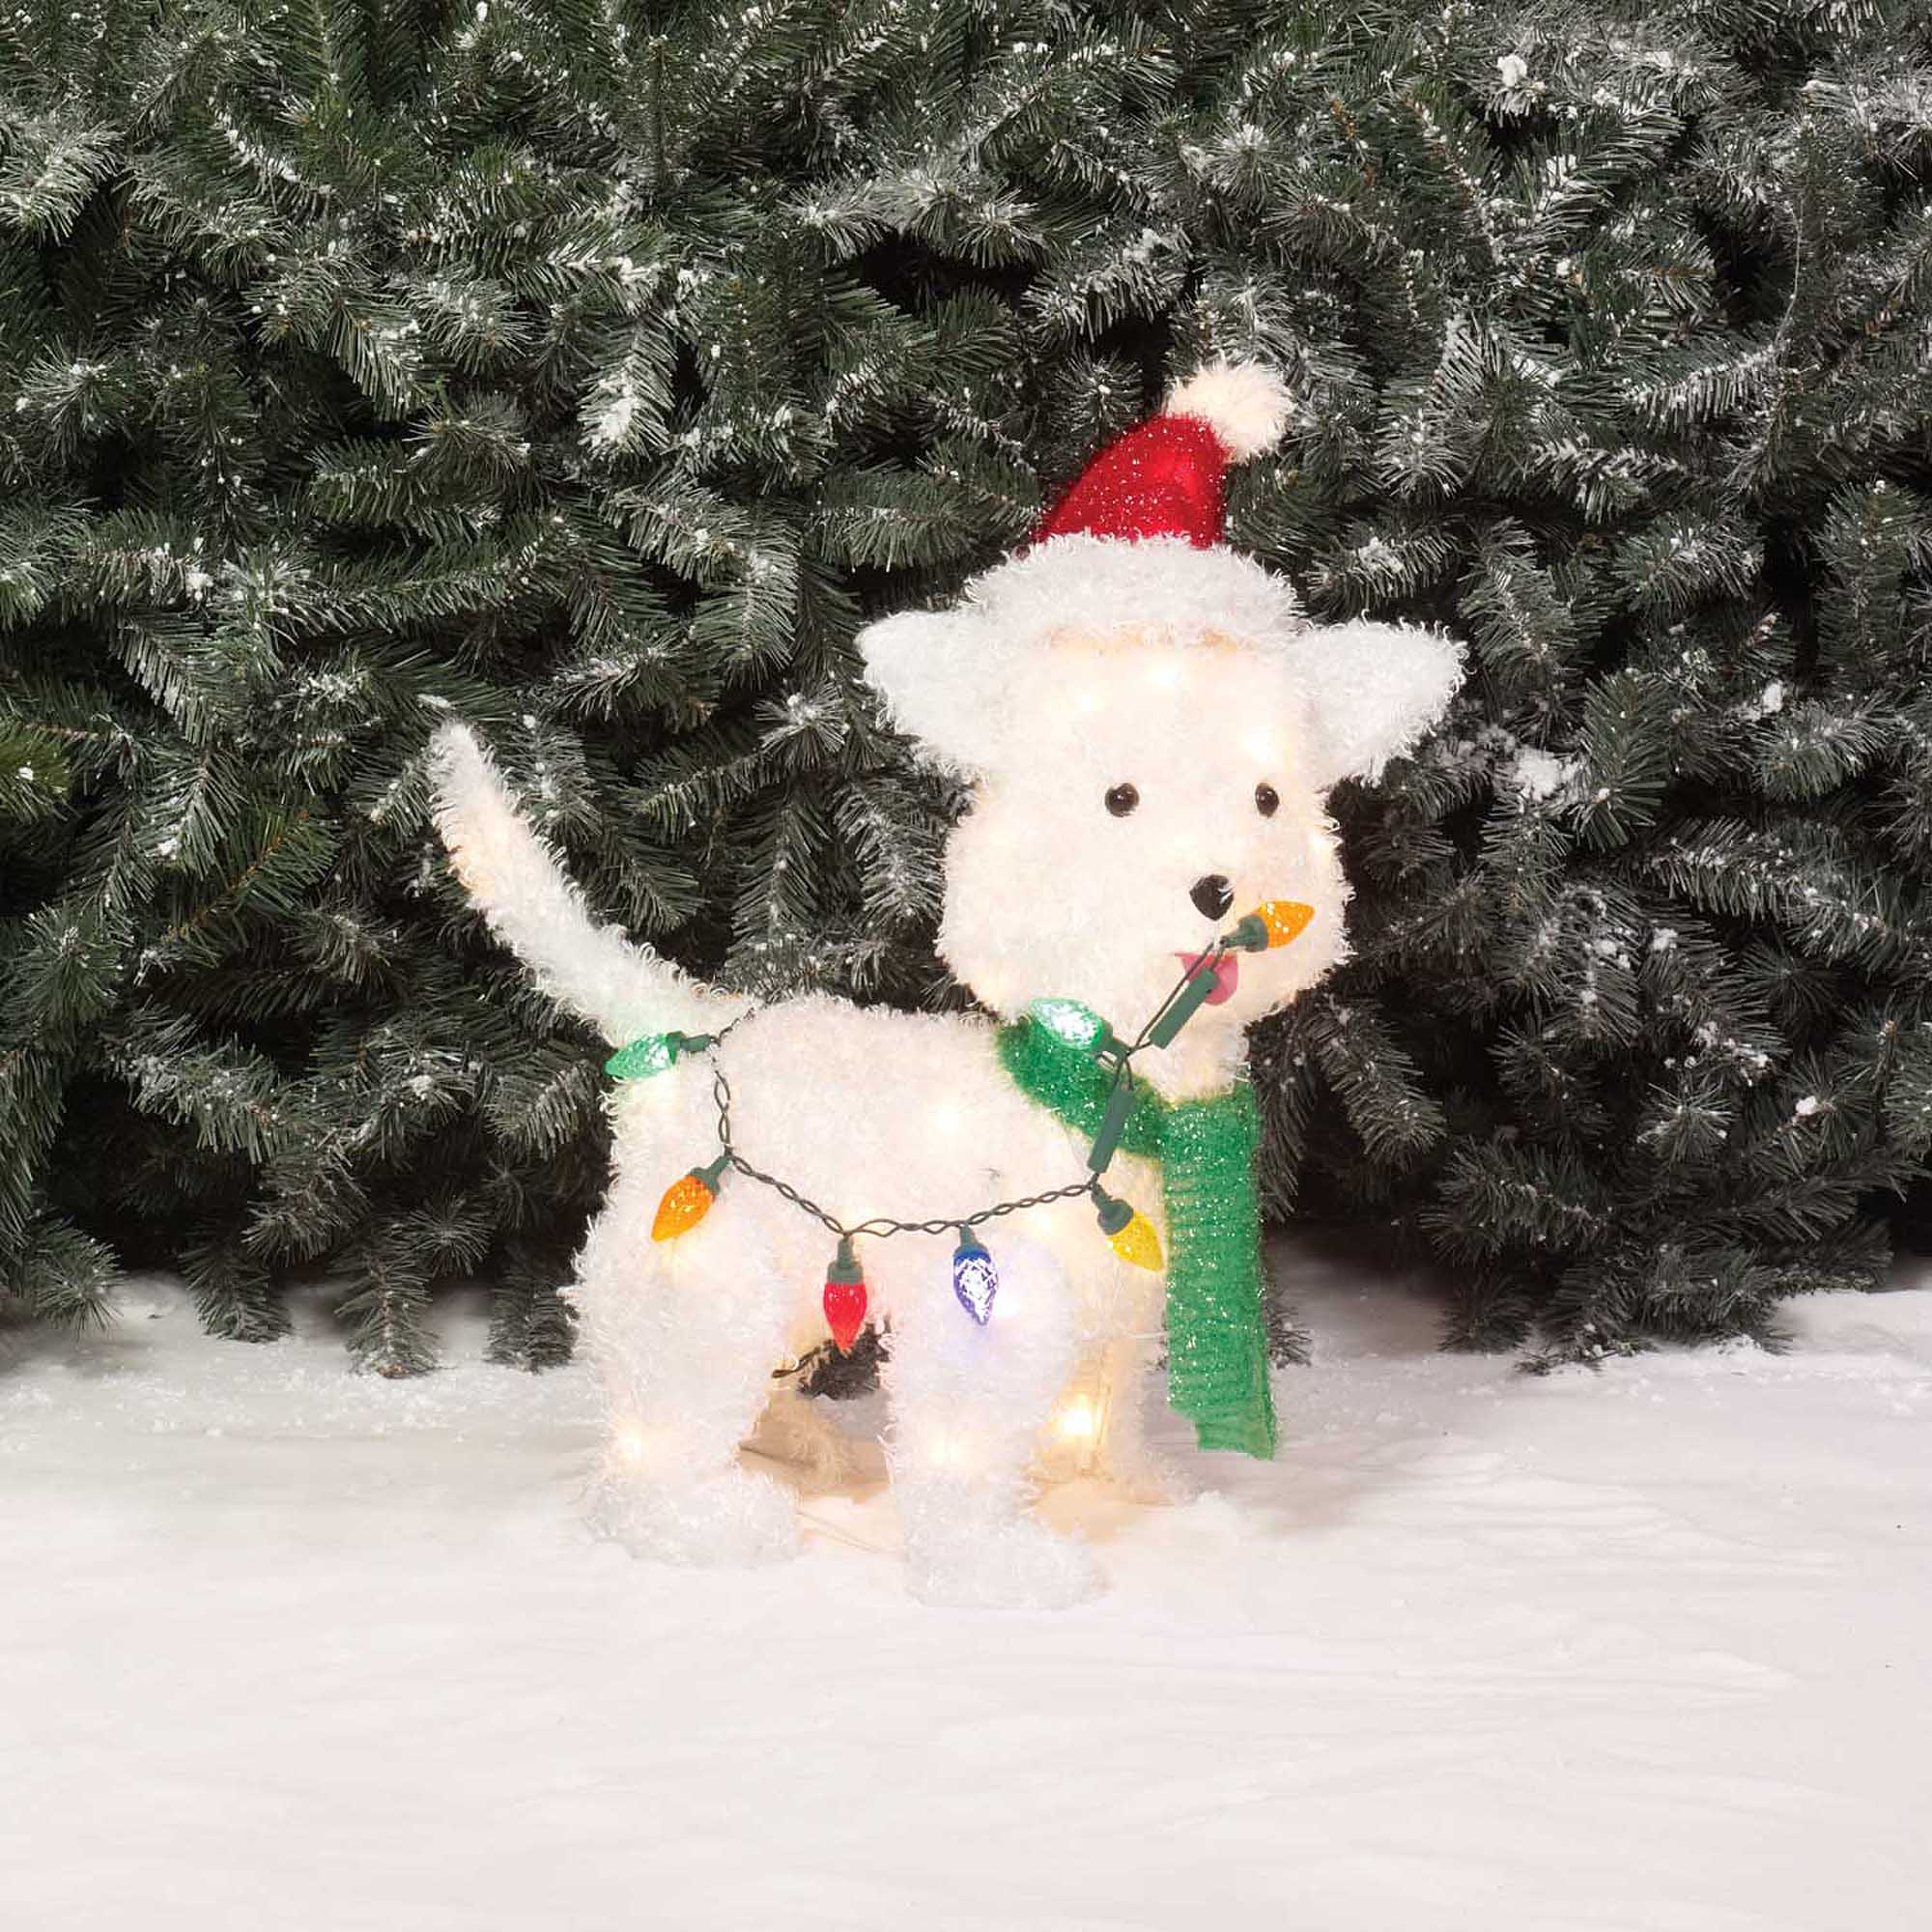 holiday time christmas decor 24 fluffy dog light sculpture walmartcom - Walmart Christmas Decorations